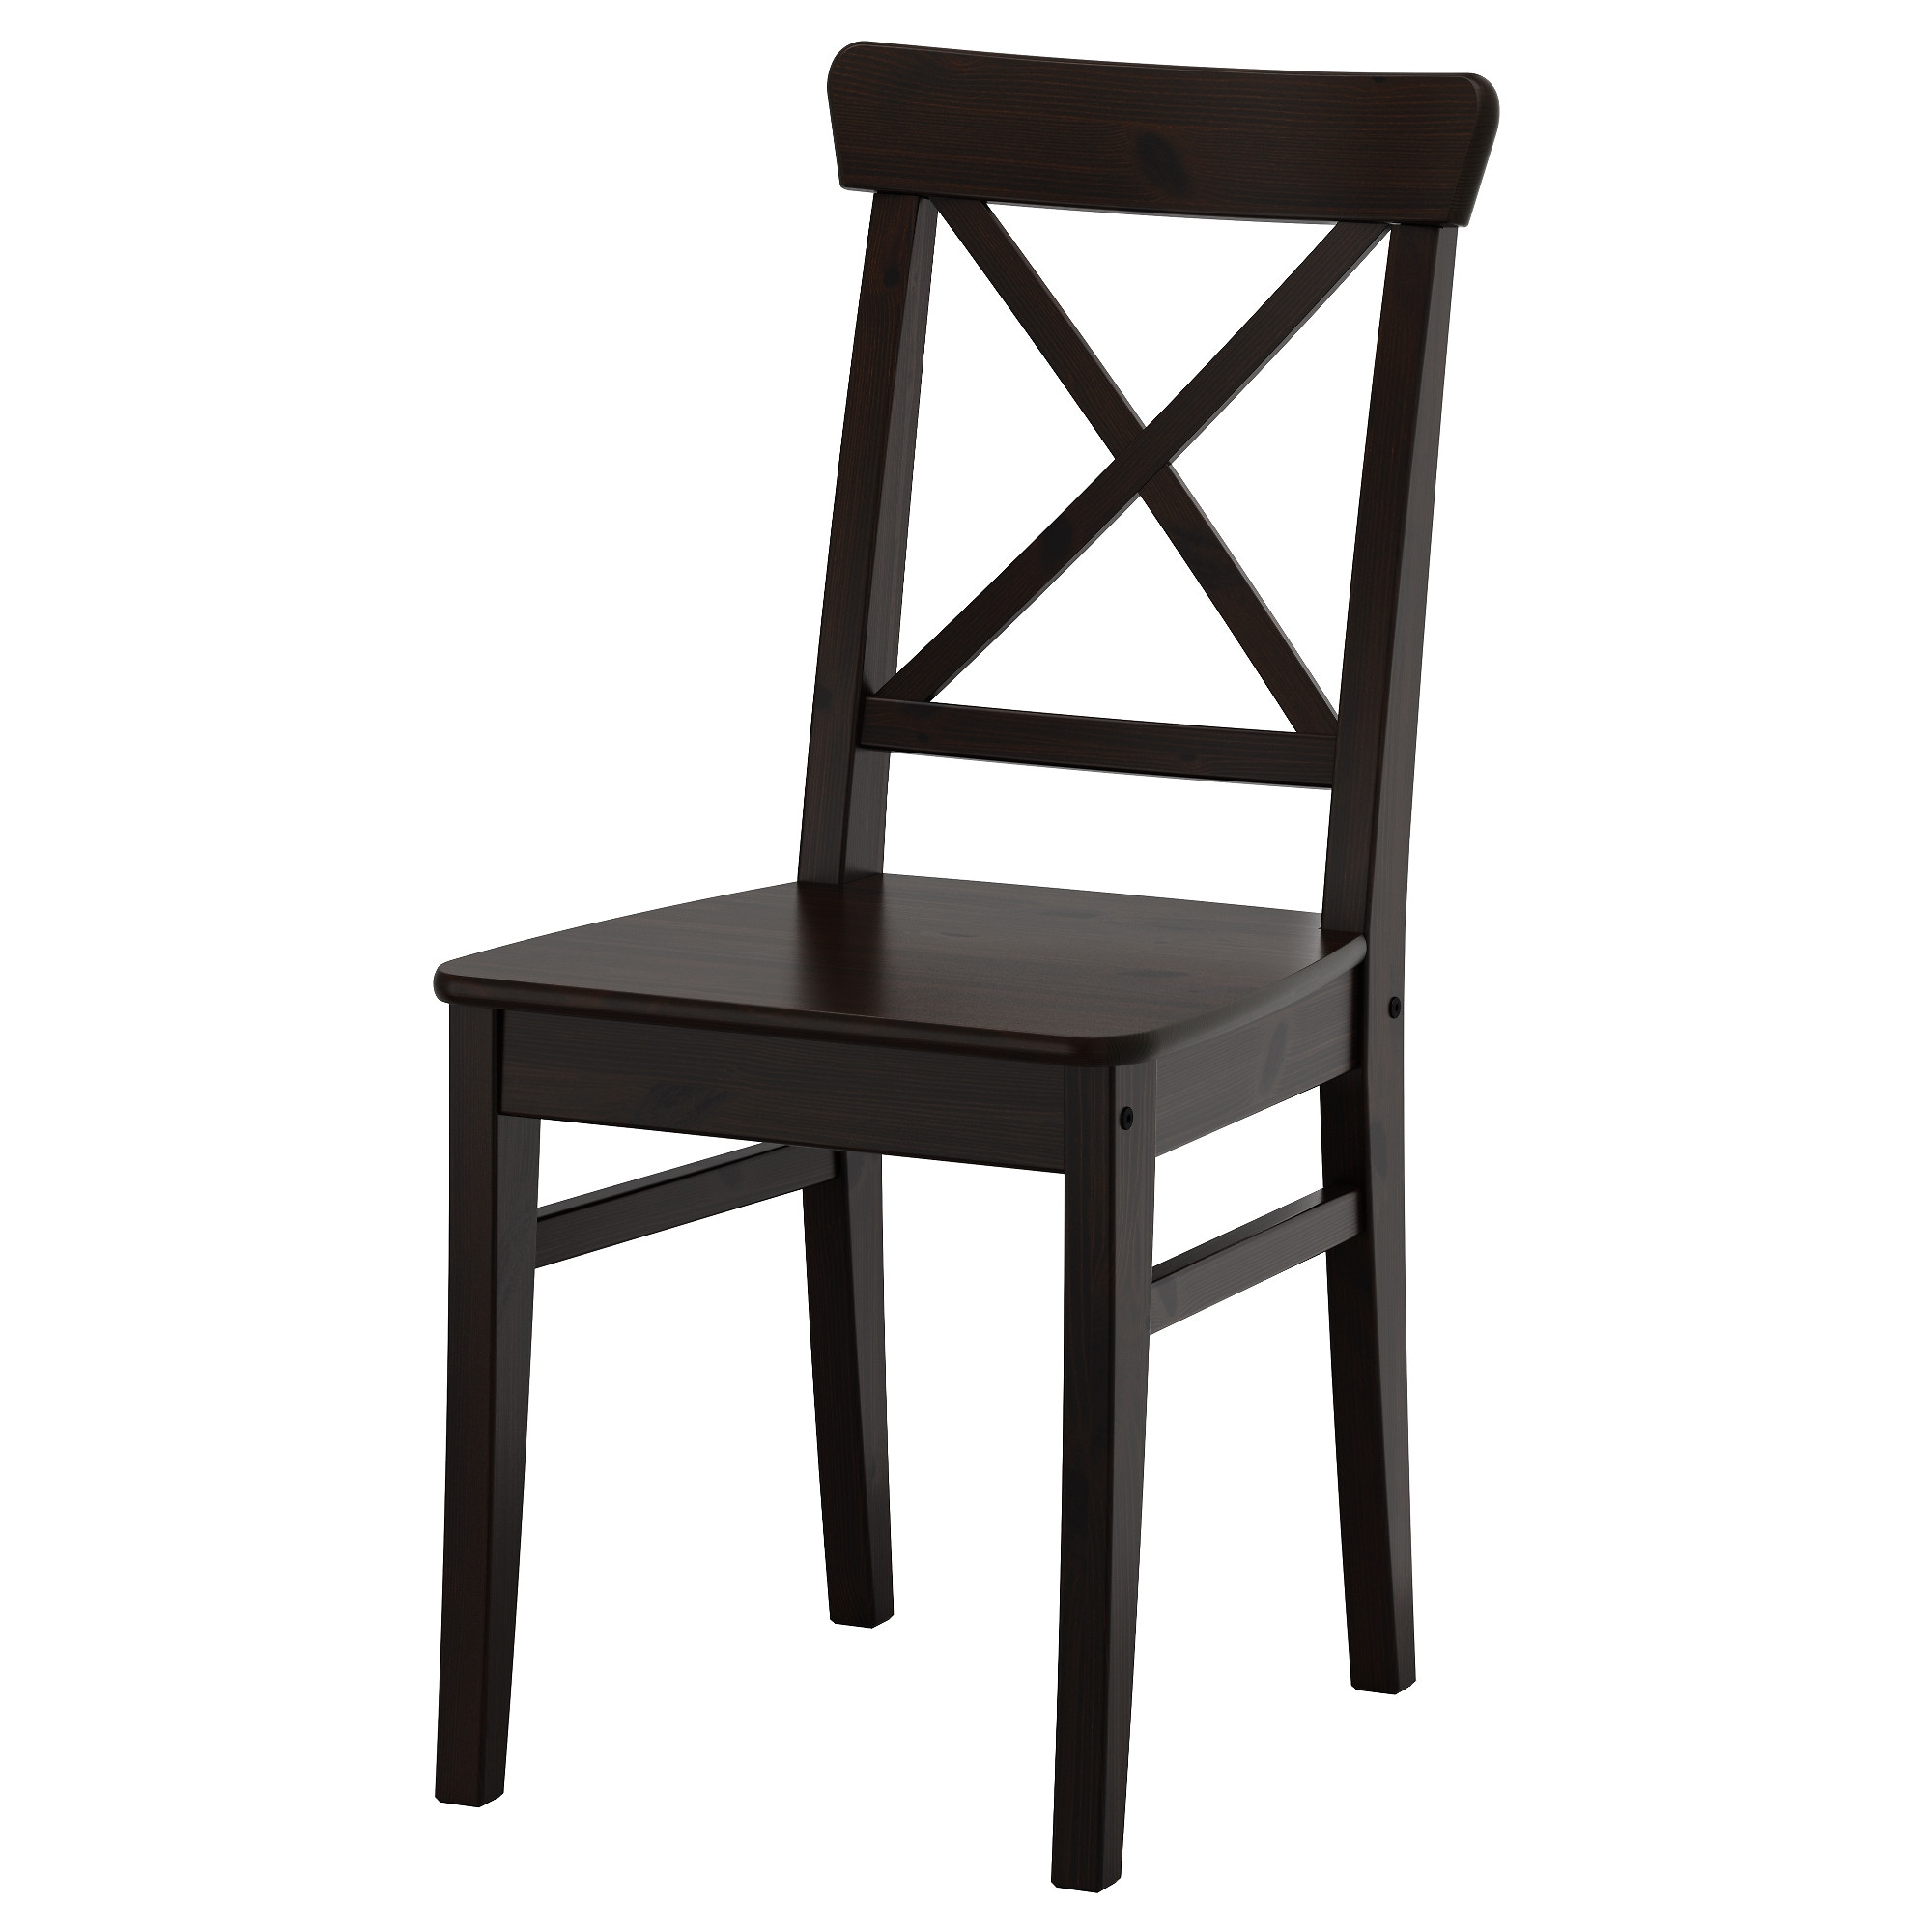 Dining chairs Dining chairs & Upholstered chairs IKEA